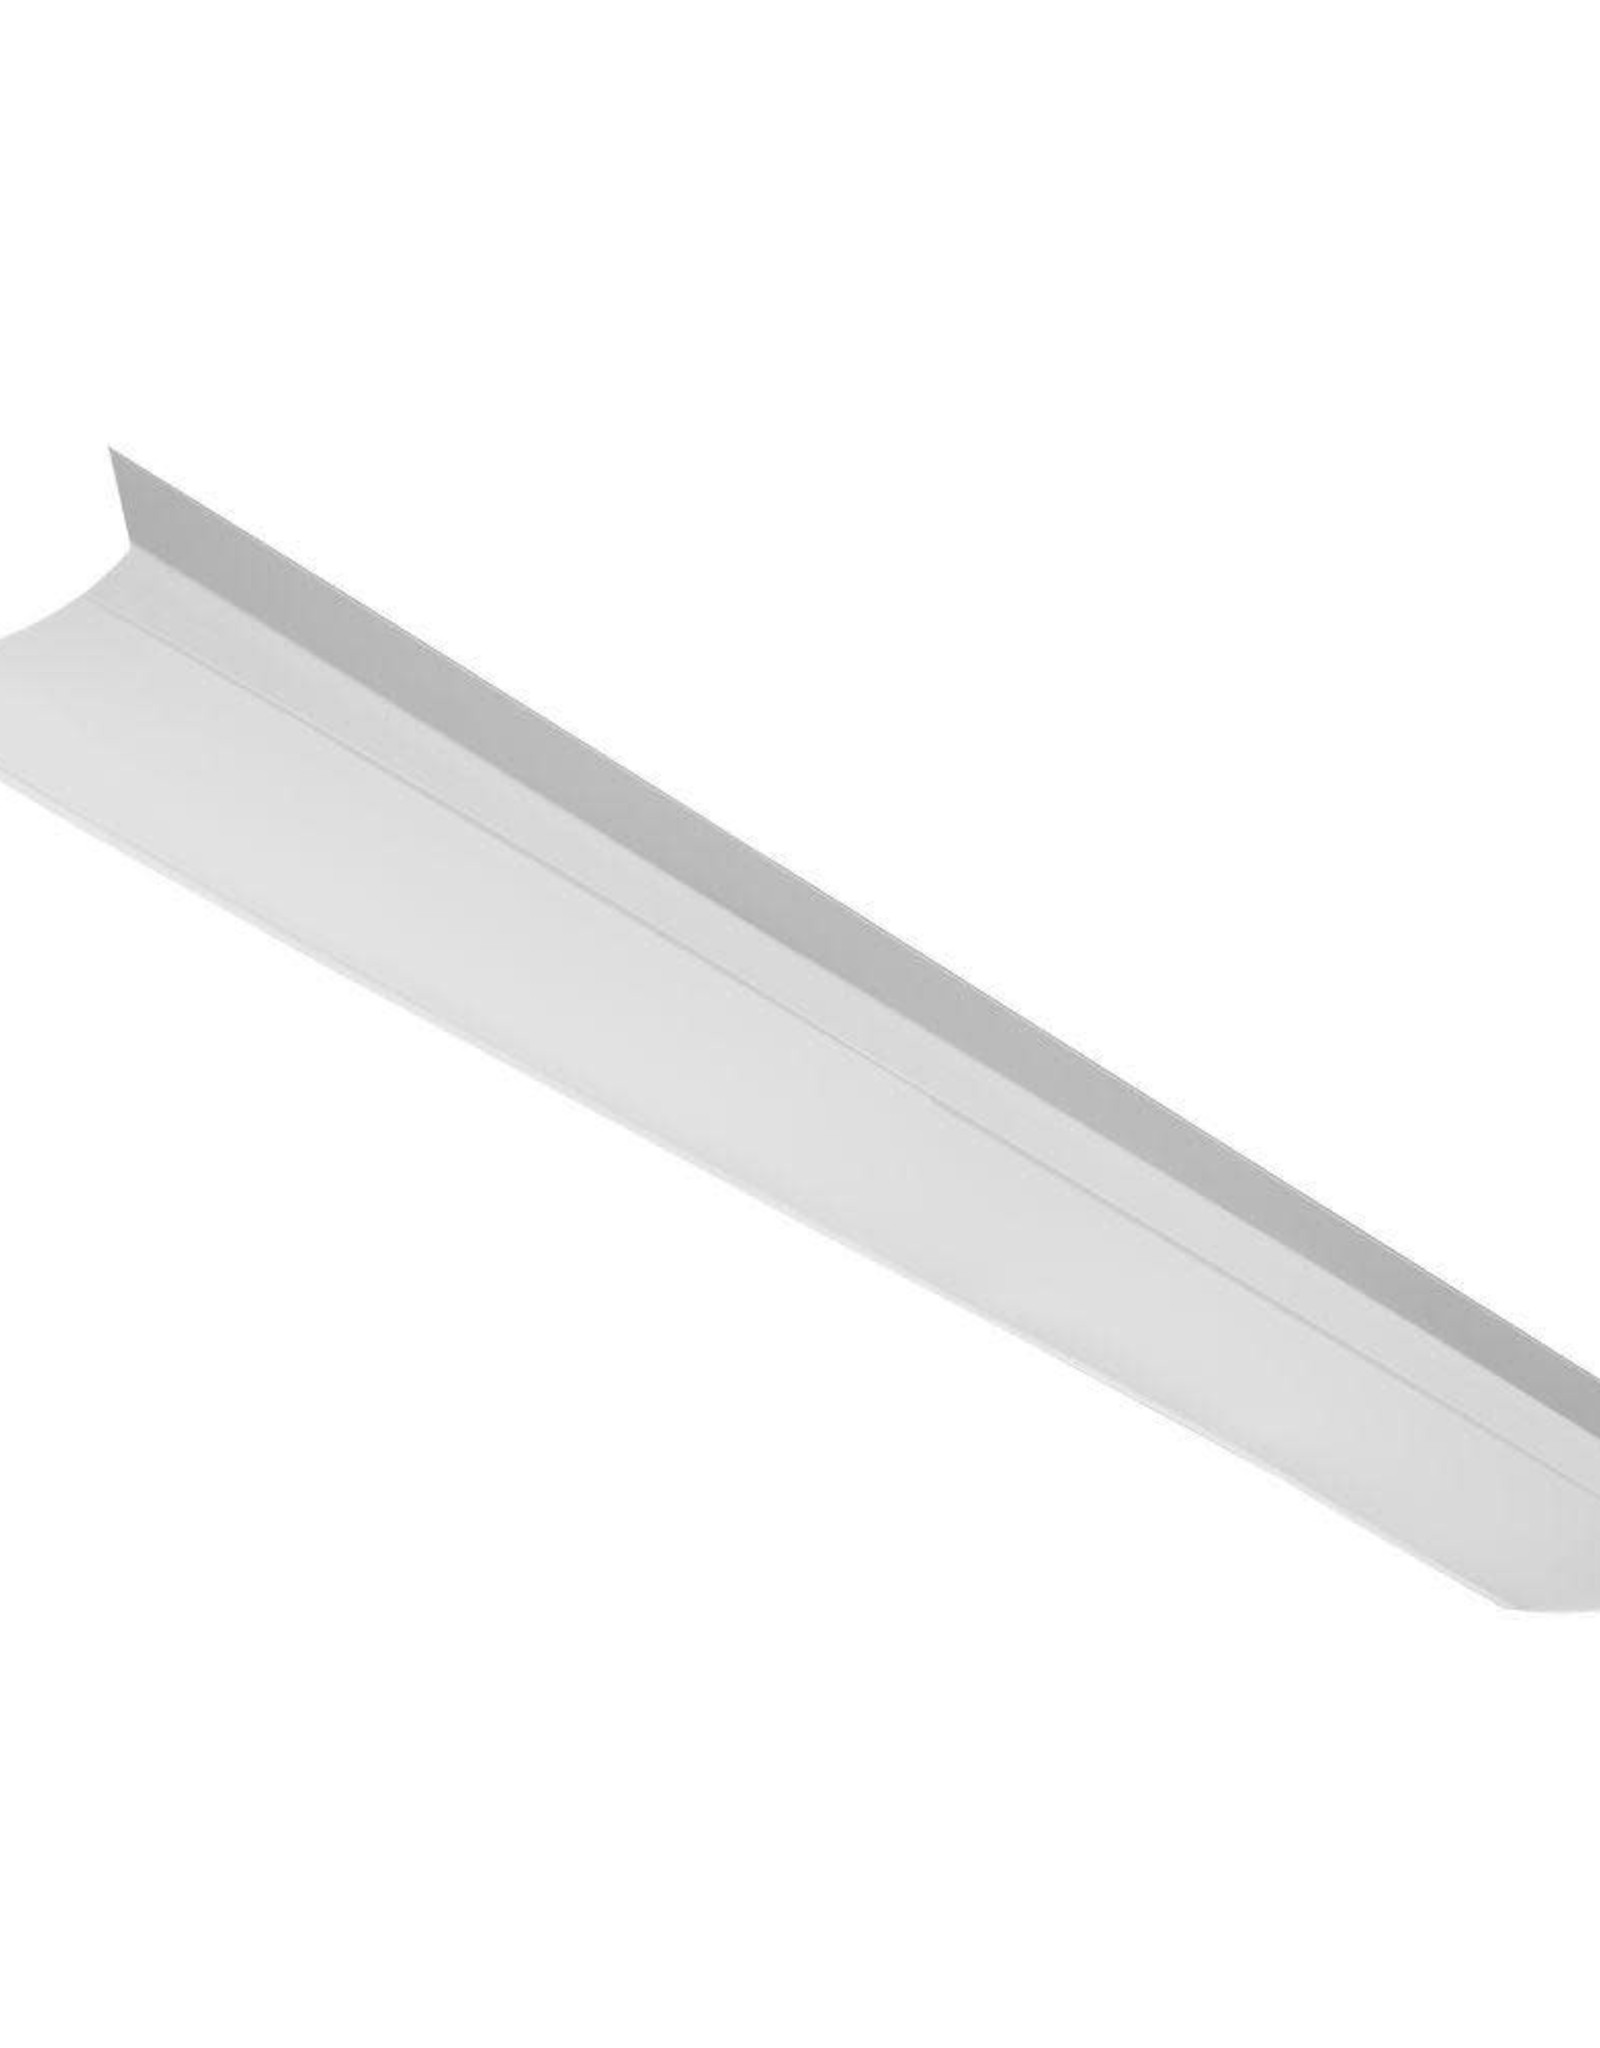 Lithonia Lighting 4 ft. White Diffuser for LED Wrap FMLWL 48